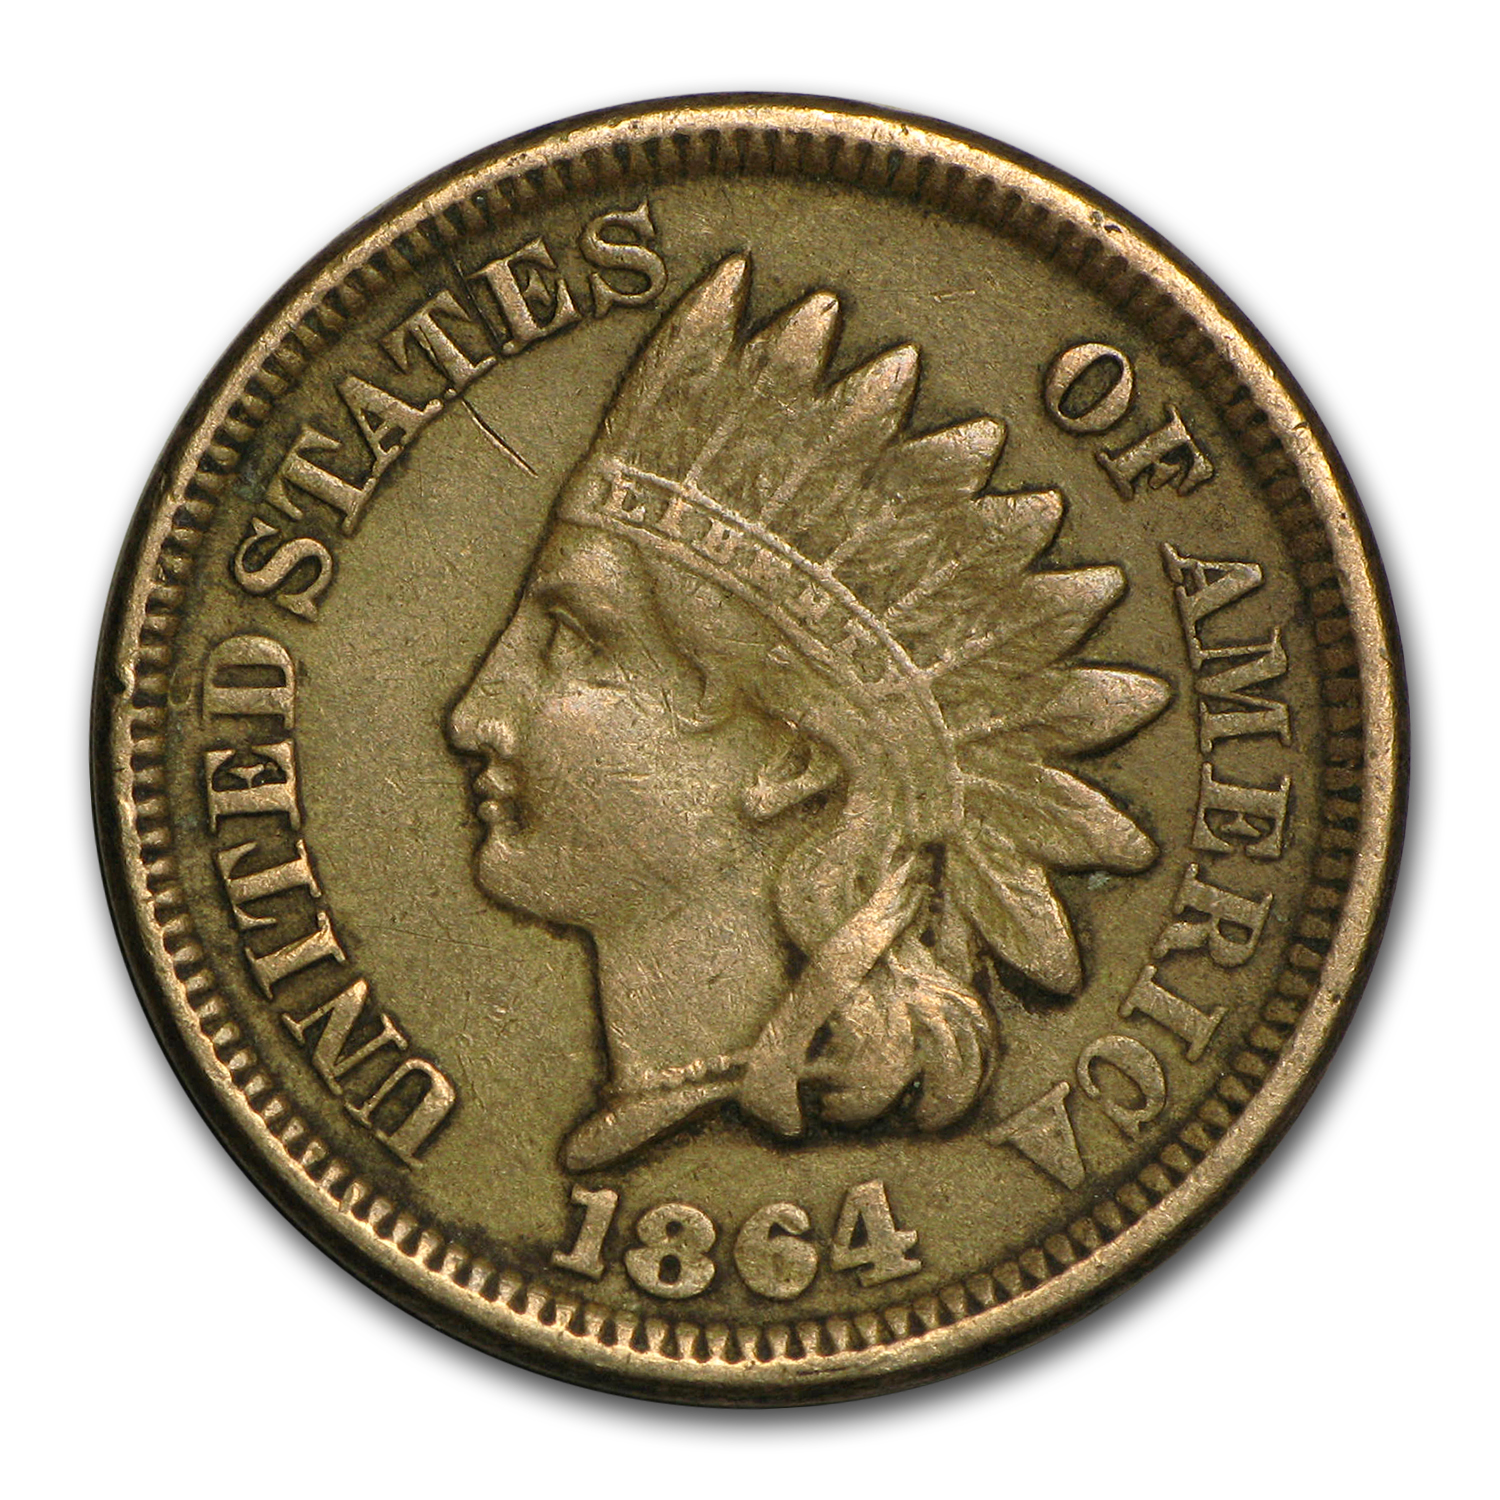 1864 Indian Head Cent Copper-Nickel VF